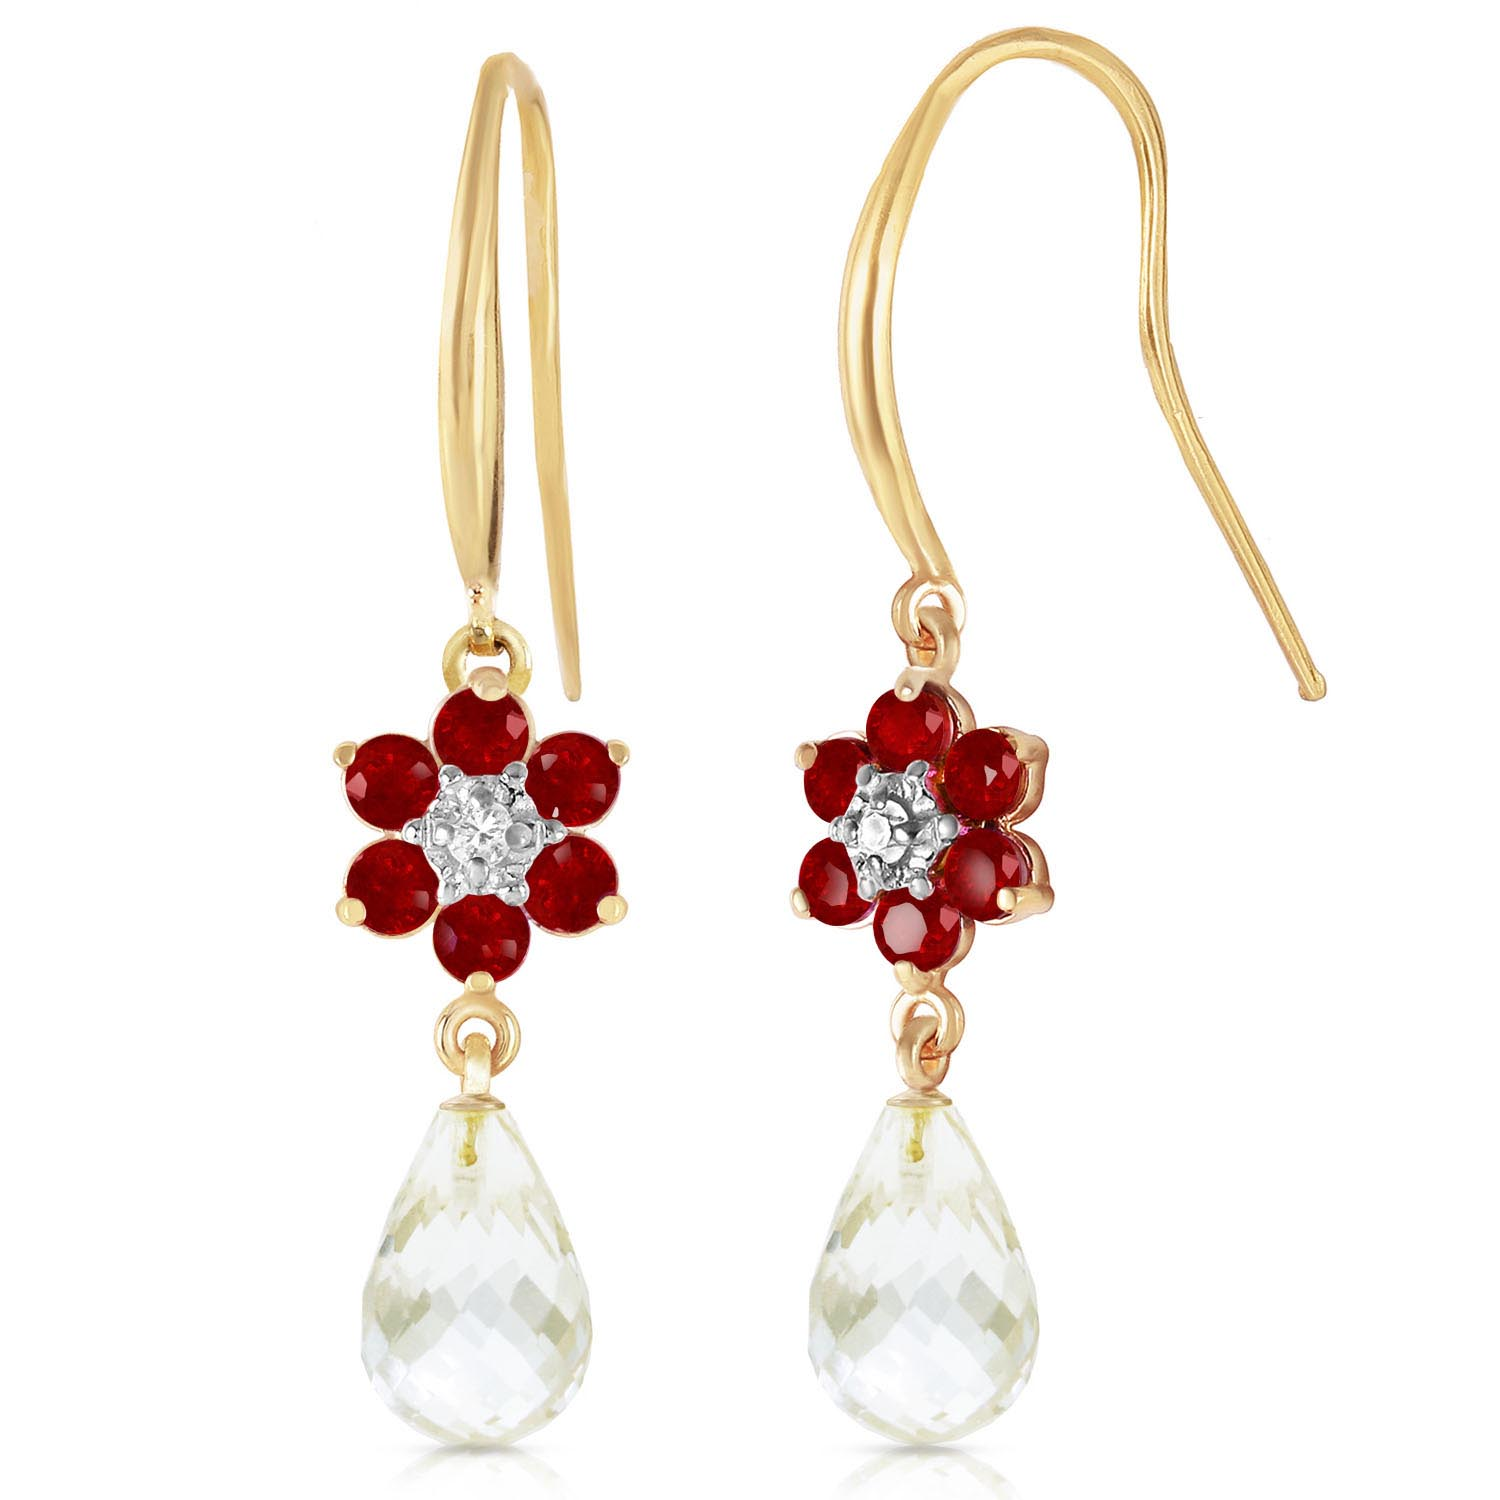 White Topaz, Diamond and Ruby Daisy Chain Drop Earrings 5.45ctw in 9ct Gold